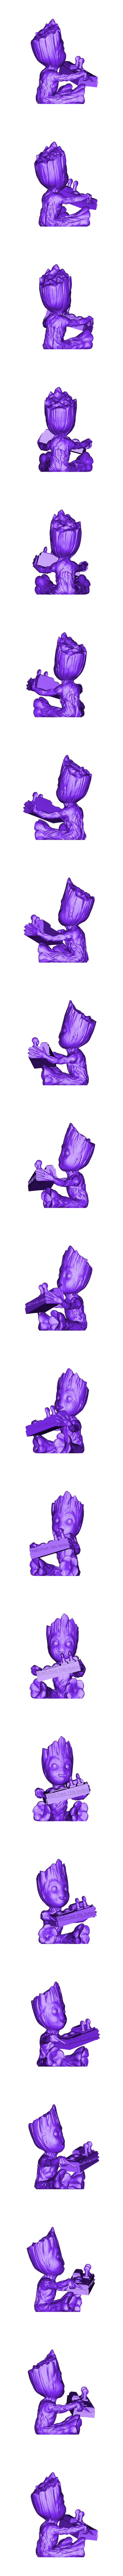 dont_push_this_button1+1.stl Download free STL file Baby Groot 5-1 (Don't Push This Button) • Design to 3D print, 3DP_PARK